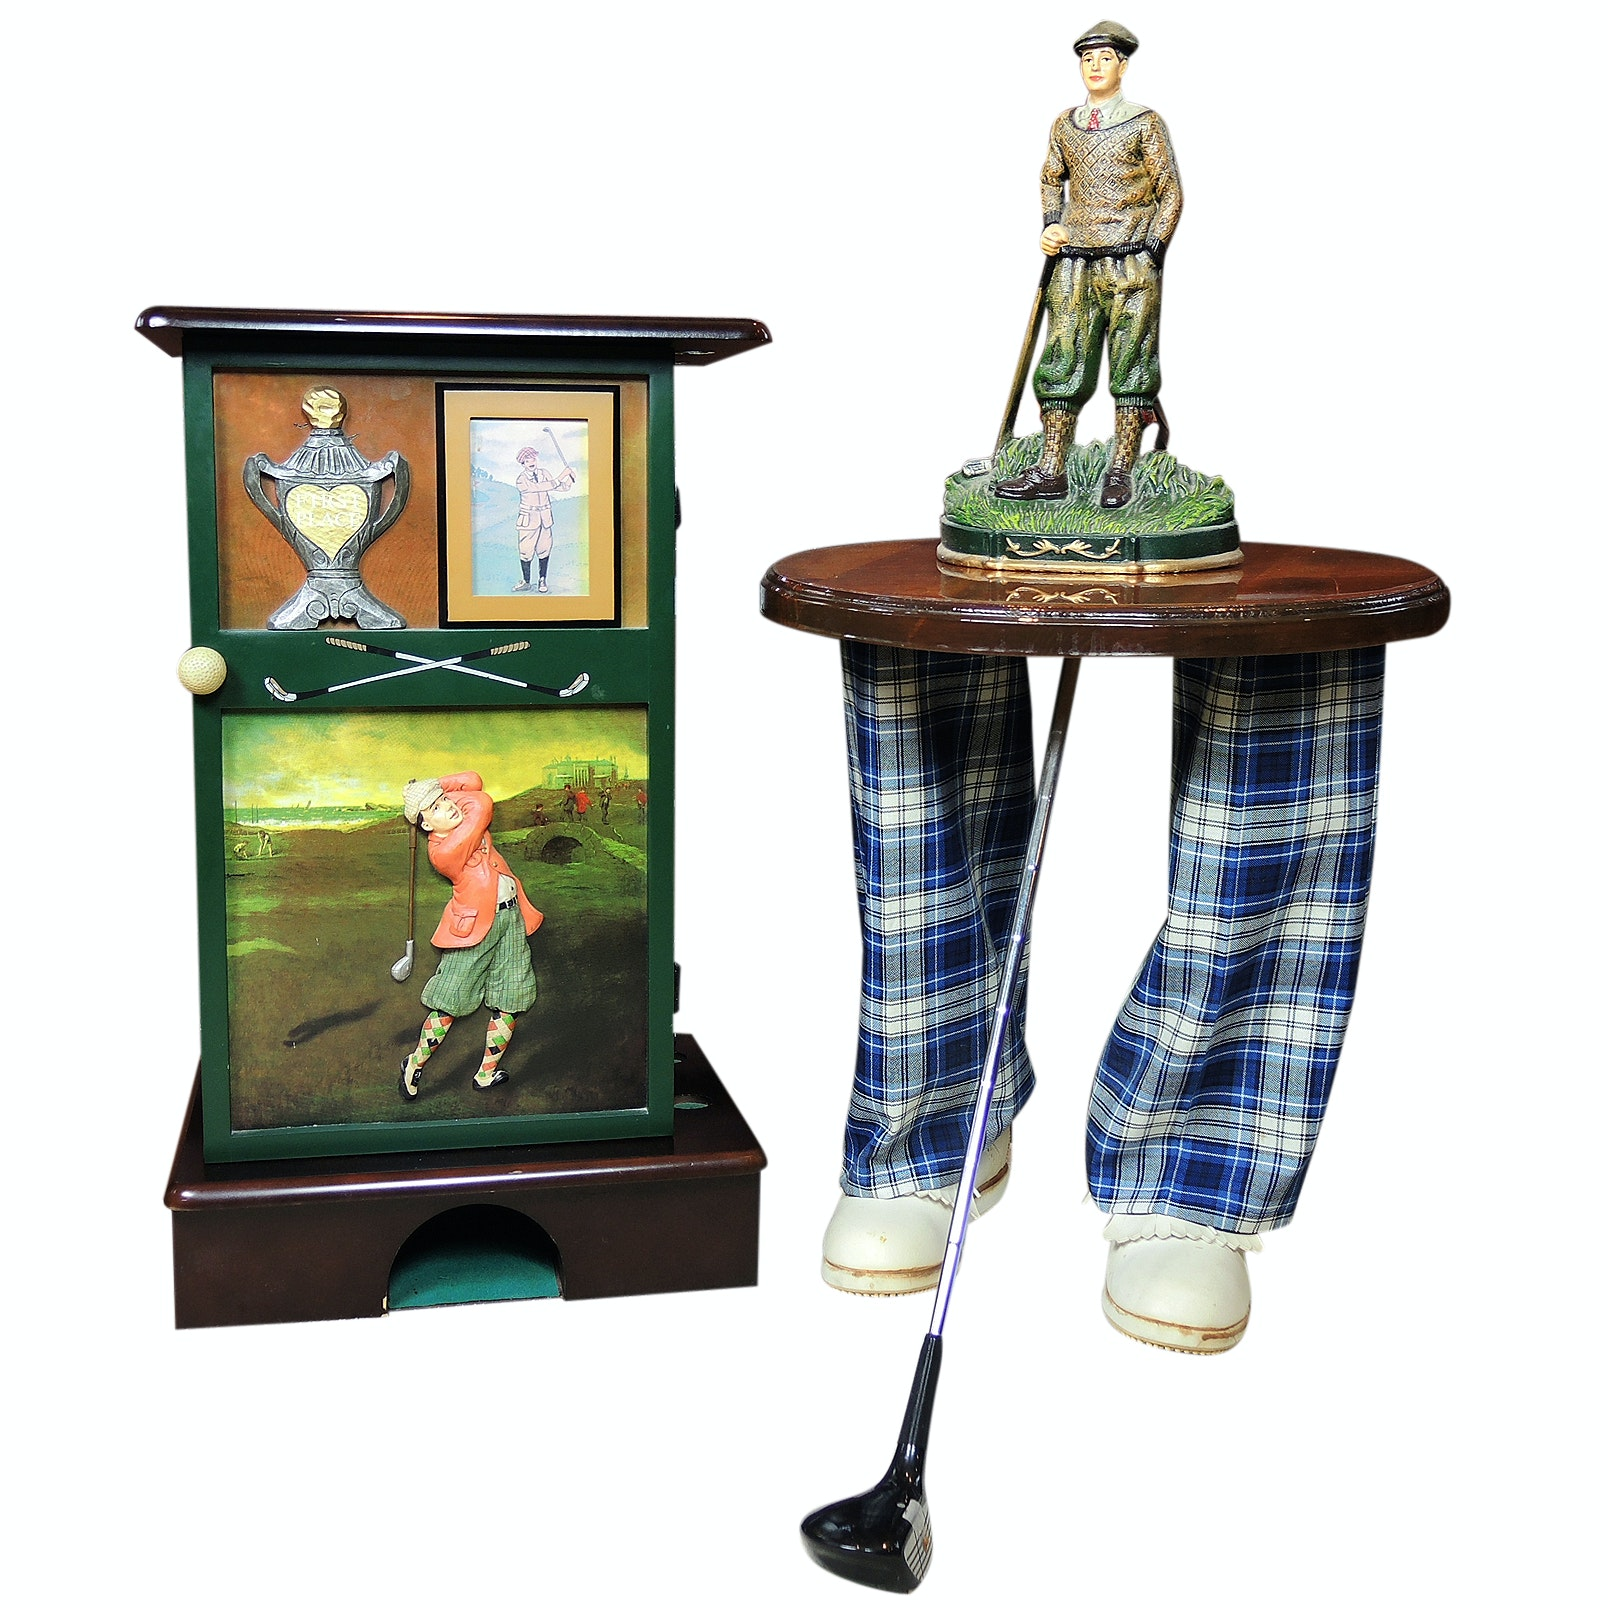 Golf Themed Tables and Cast Iron Figurine